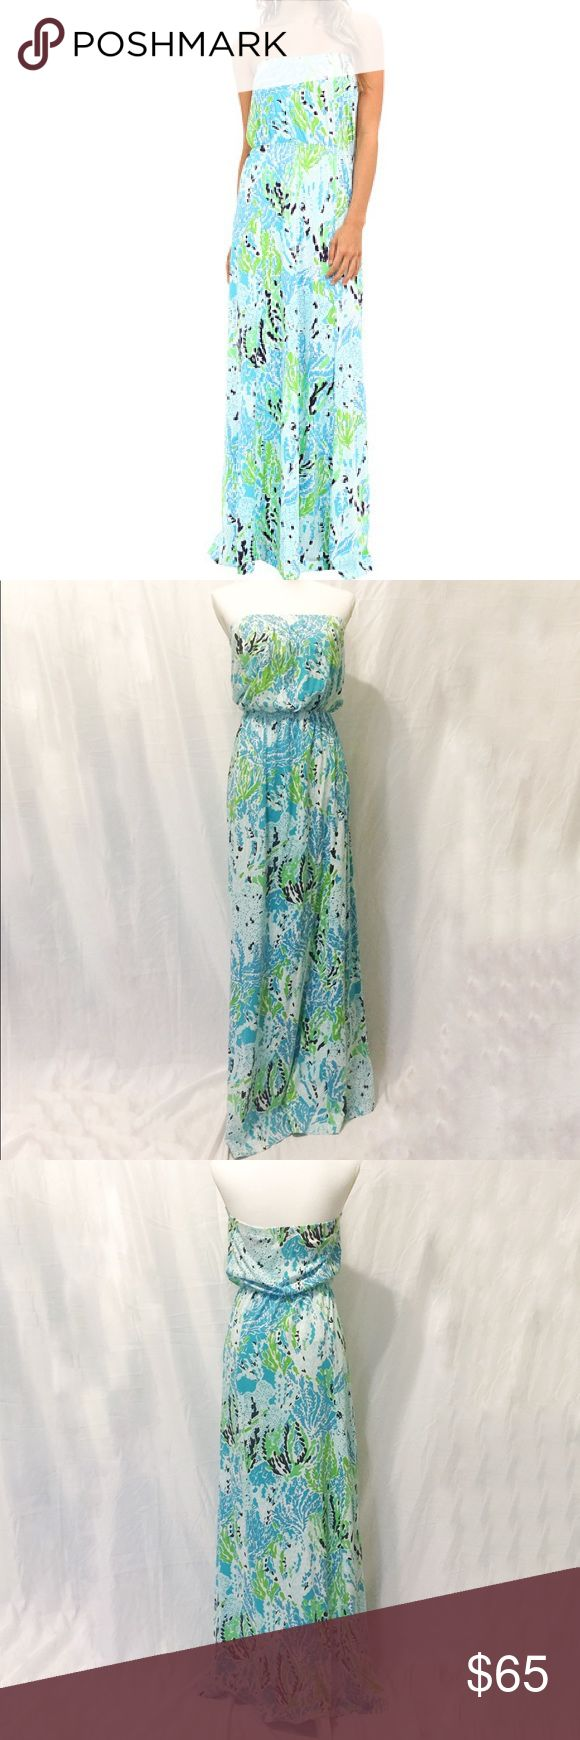 Lilly Pulitzer | Marlisa Strapless Maxi Dress | S Lilly Pulitzer | Marlisa Strapless Maxi Dress   • Size: Small • Let's Cha Cha Print in Spa Blue • Excellent Condition  • True to Size • No Wear or Damage  • Pet/Smoke Free Home • 100% Pima Cotton • Elastic top & waist • See Photos for Measurements  Let me know if you have any questions and happy shopping! Lilly Pulitzer Dresses Maxi